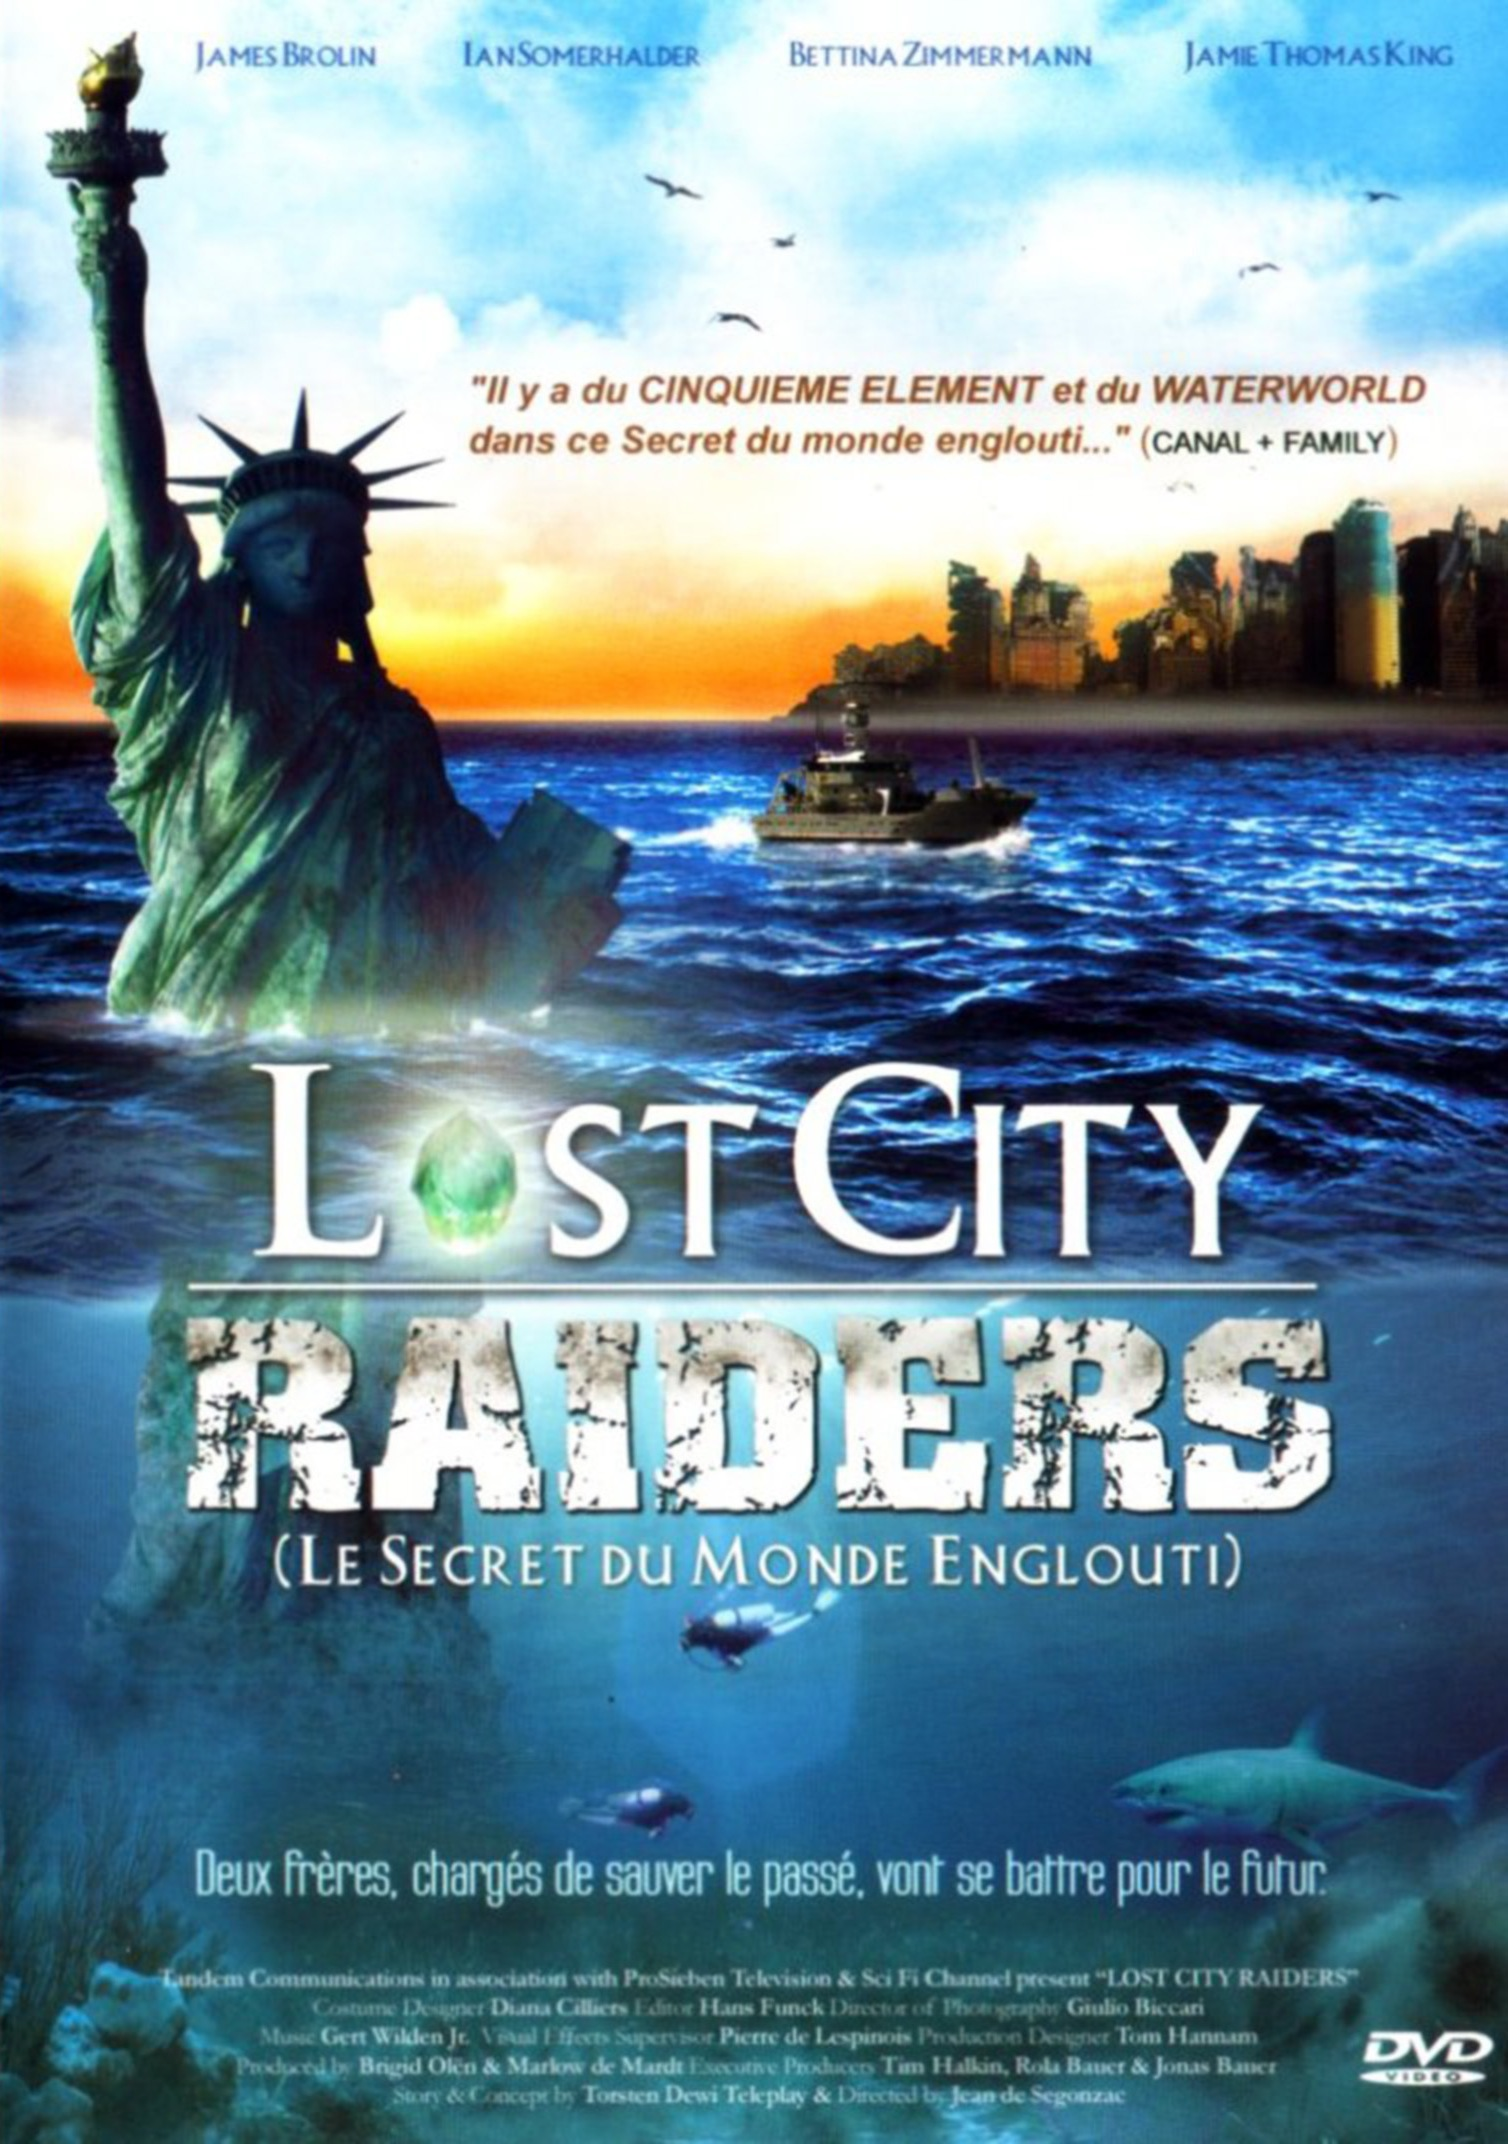 Lost City Raiders : Le secret du monde englouti (TV)